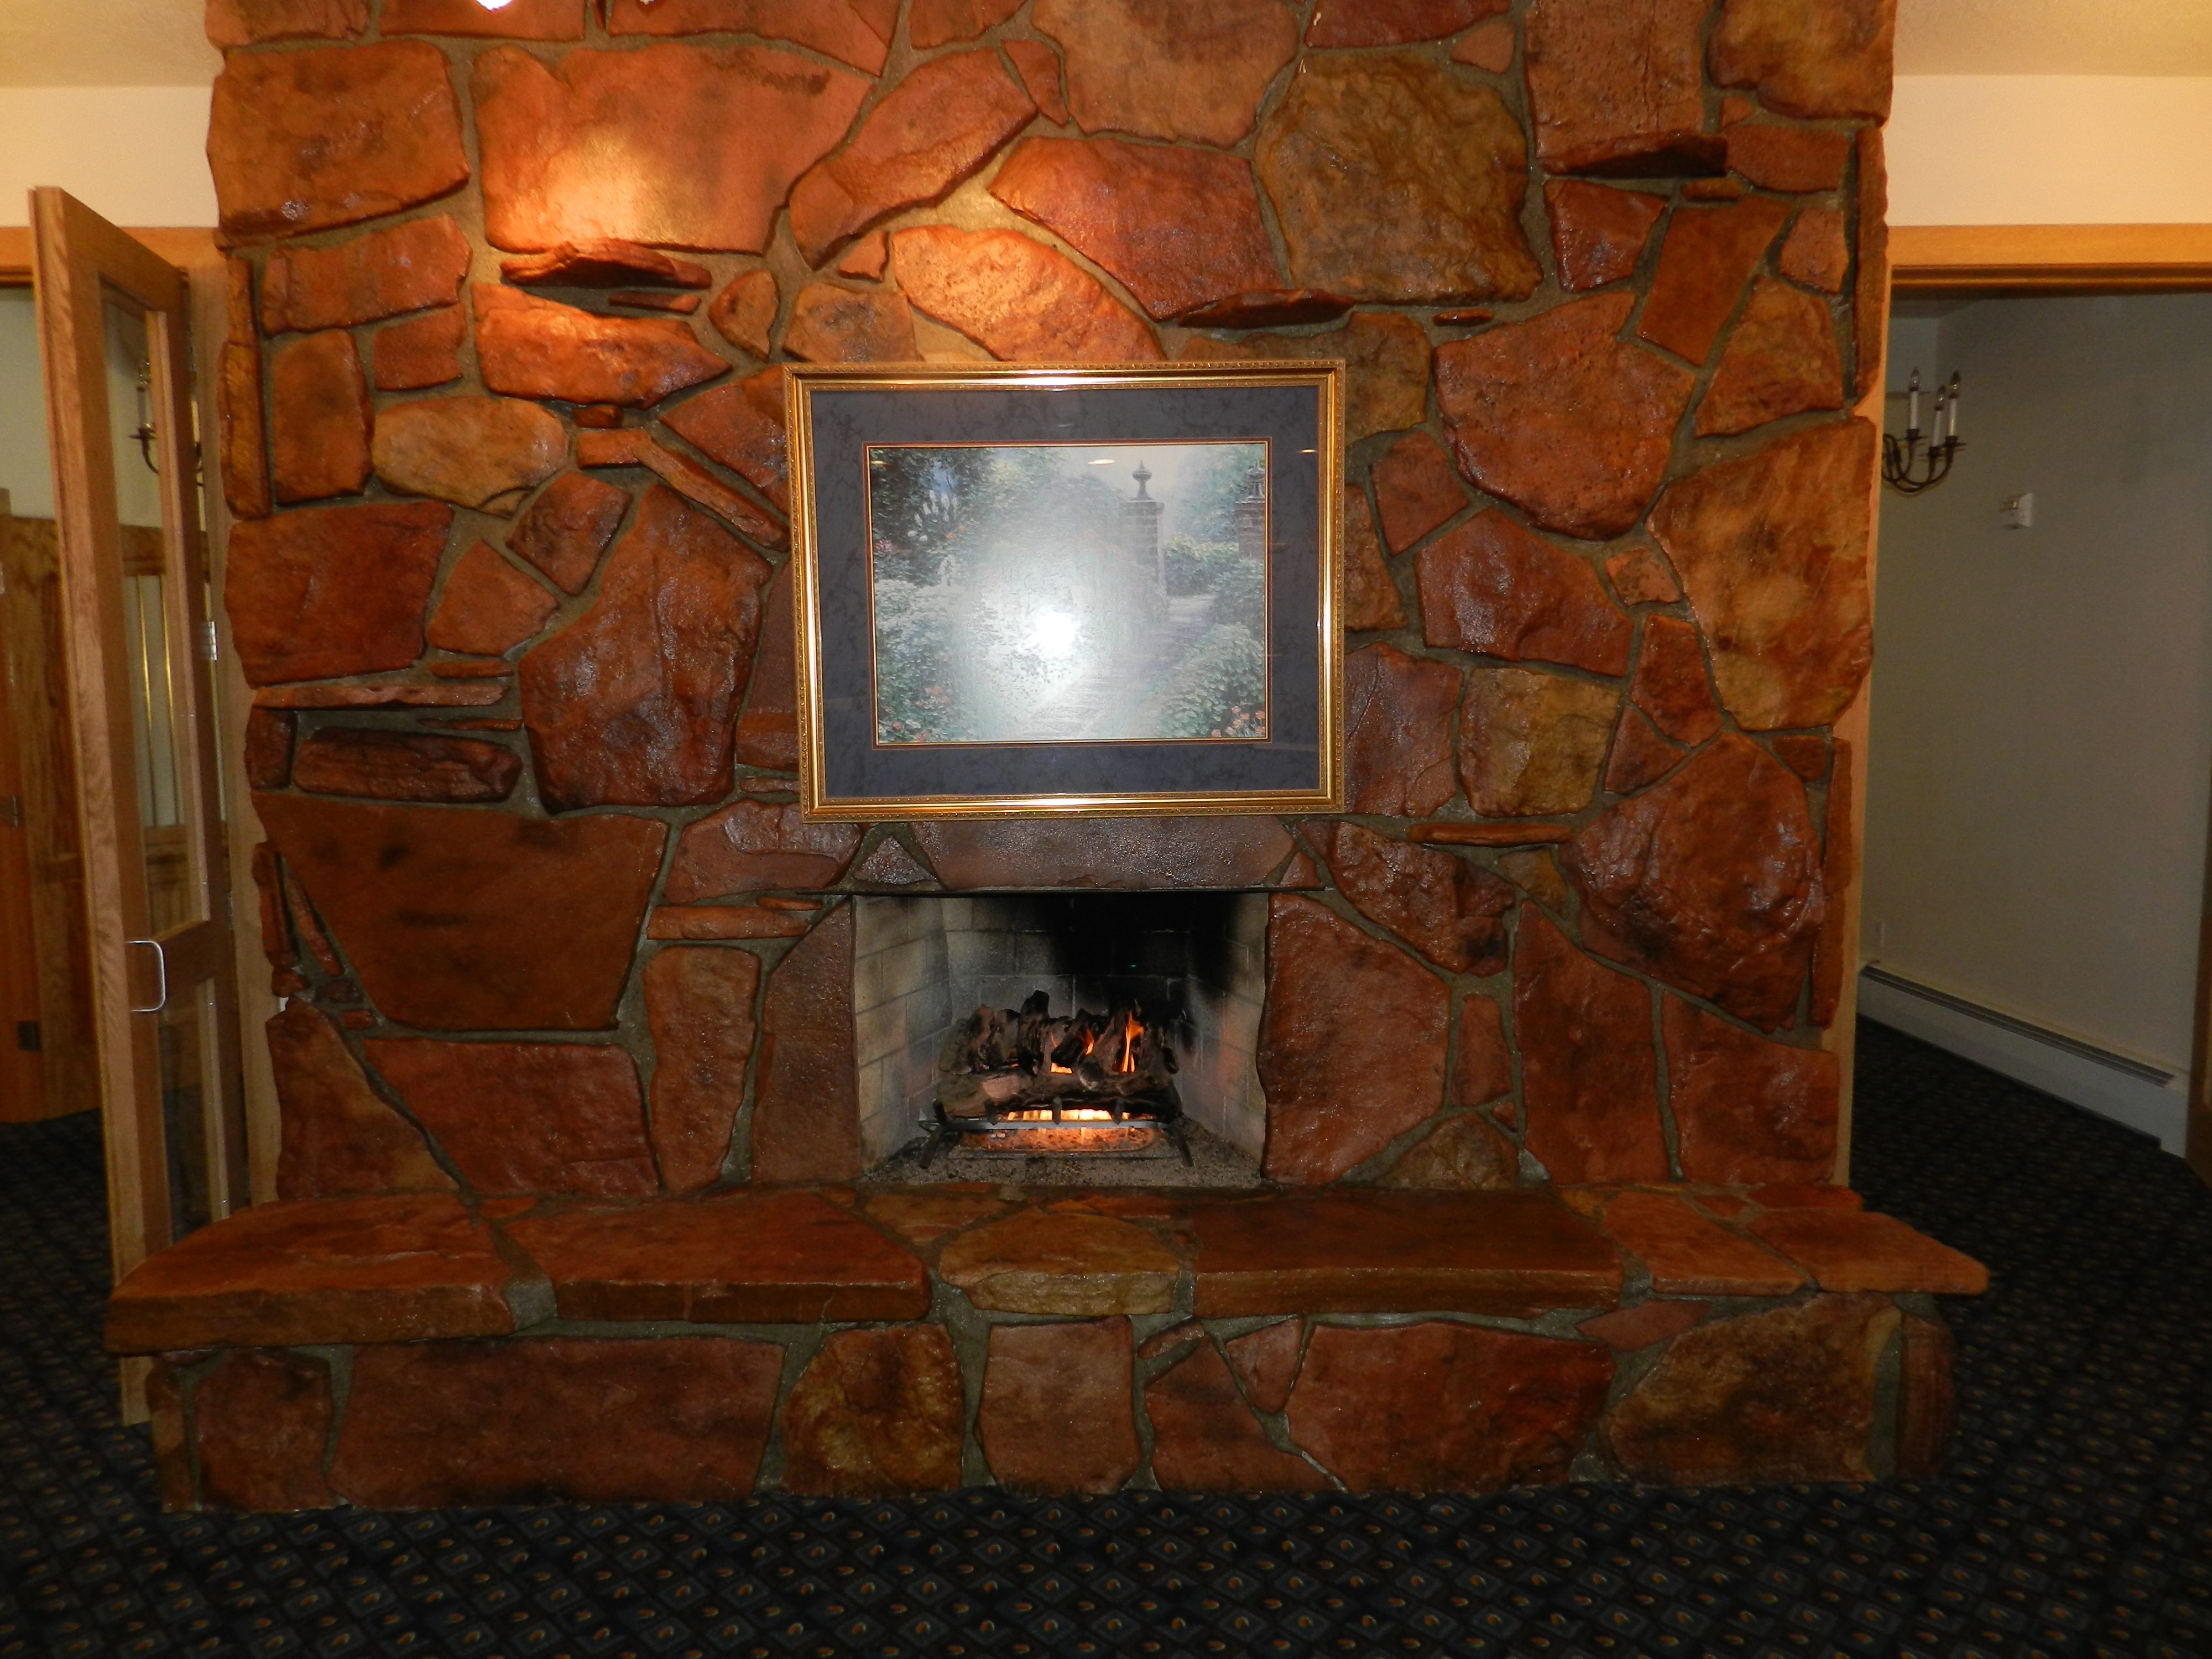 Fireplace pic